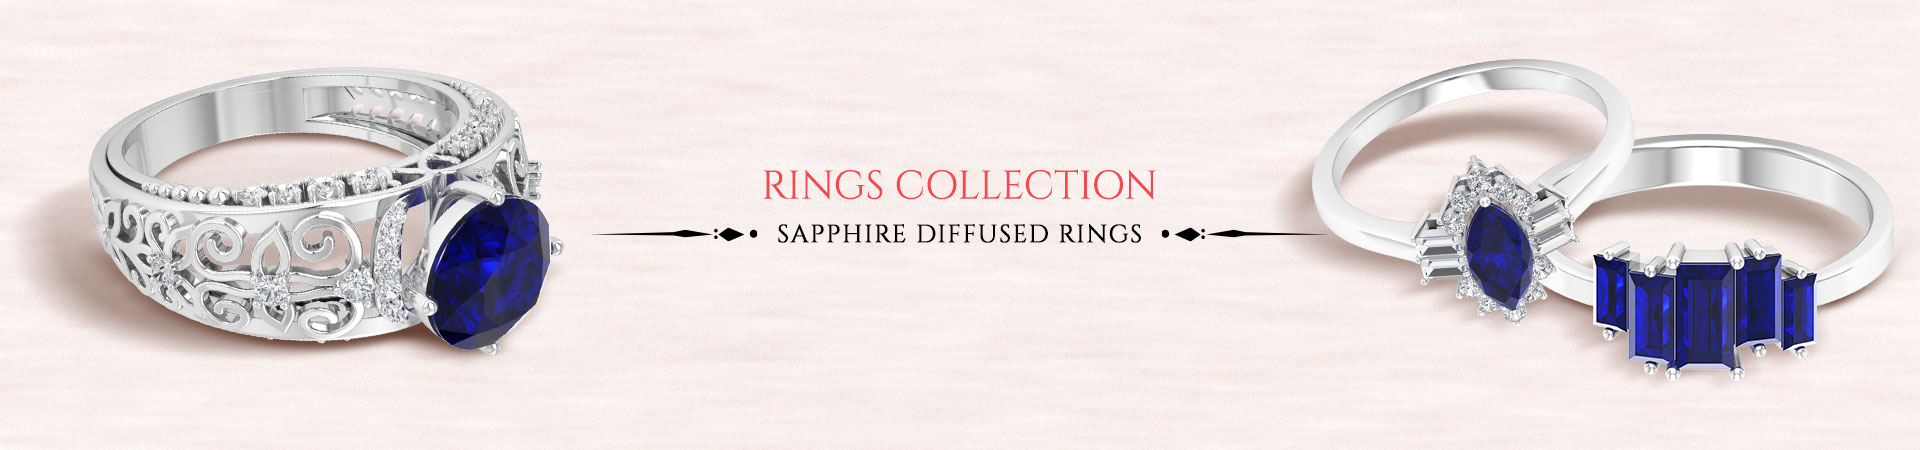 Sapphire Diffused Rings